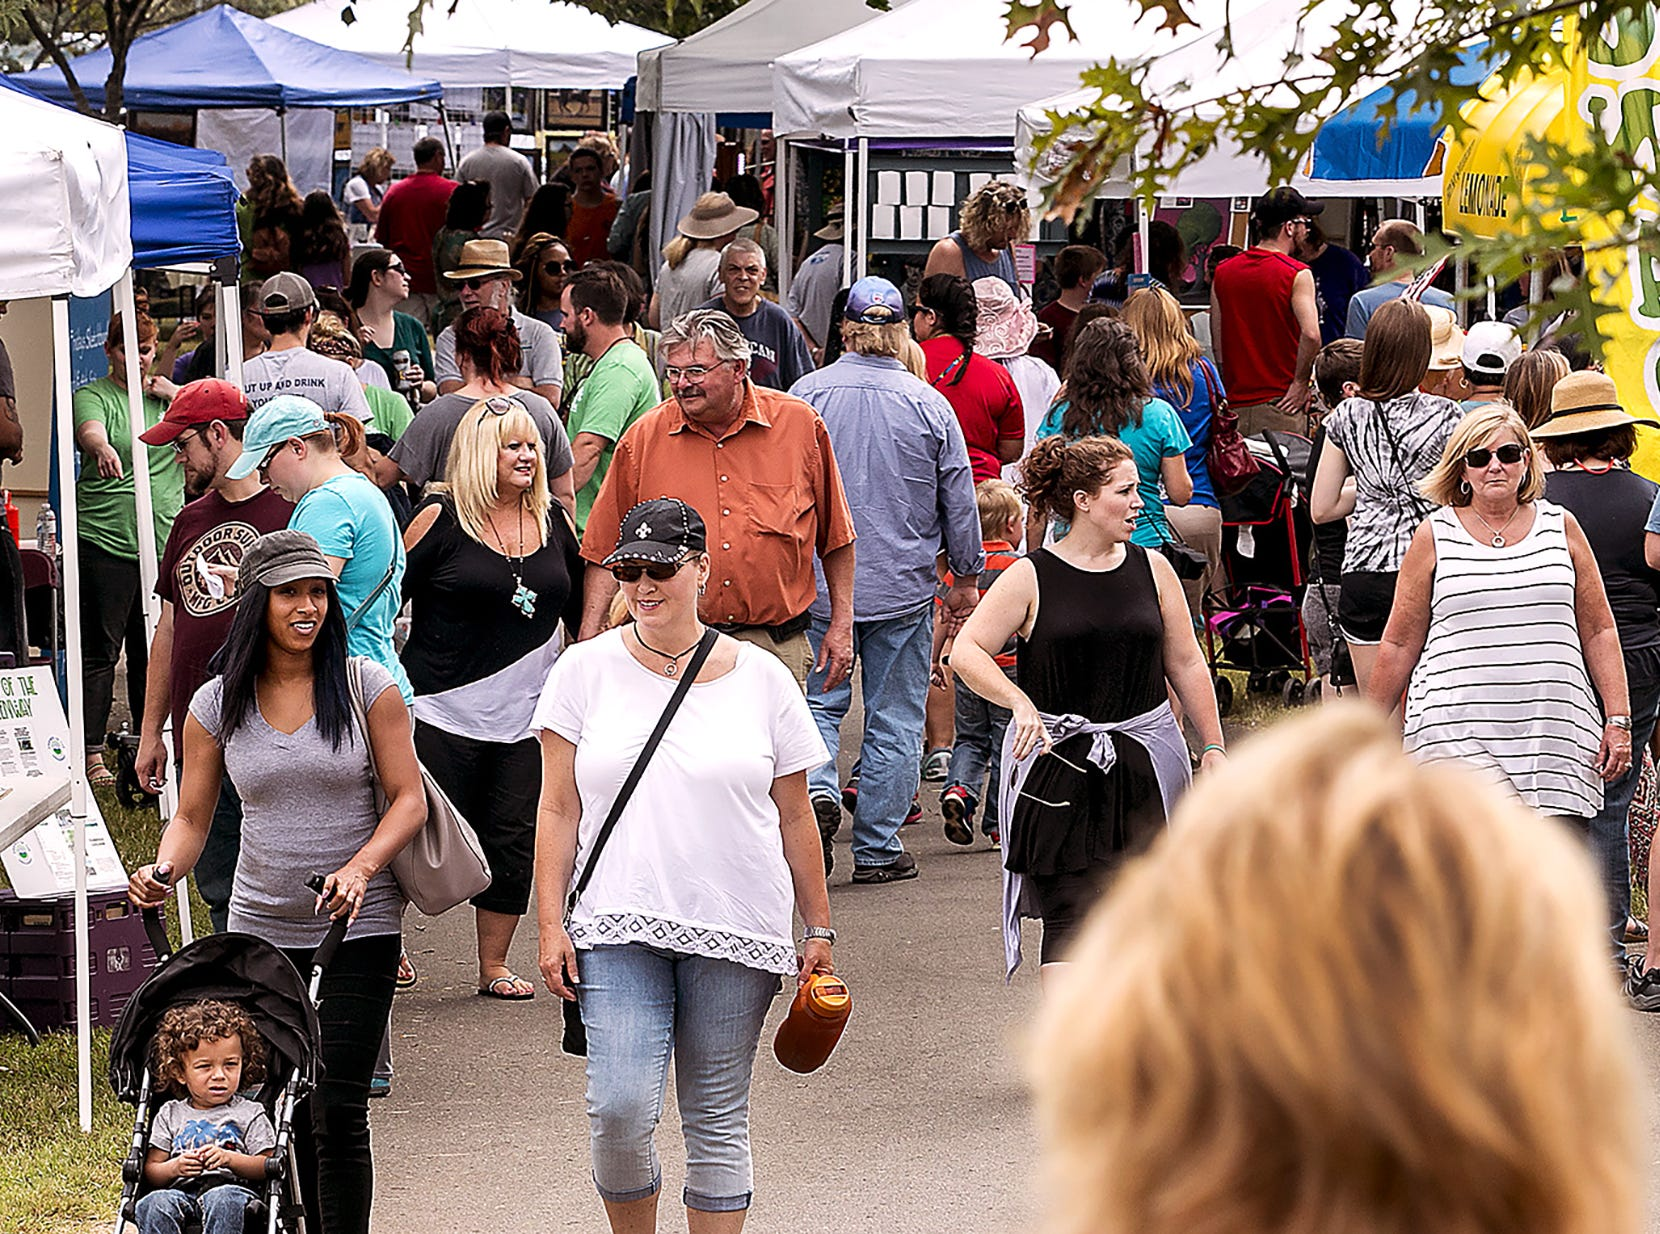 A large crowd fills the Murfreesboro Greenway at Old Fort Park for the annual Greenway Art Festival.